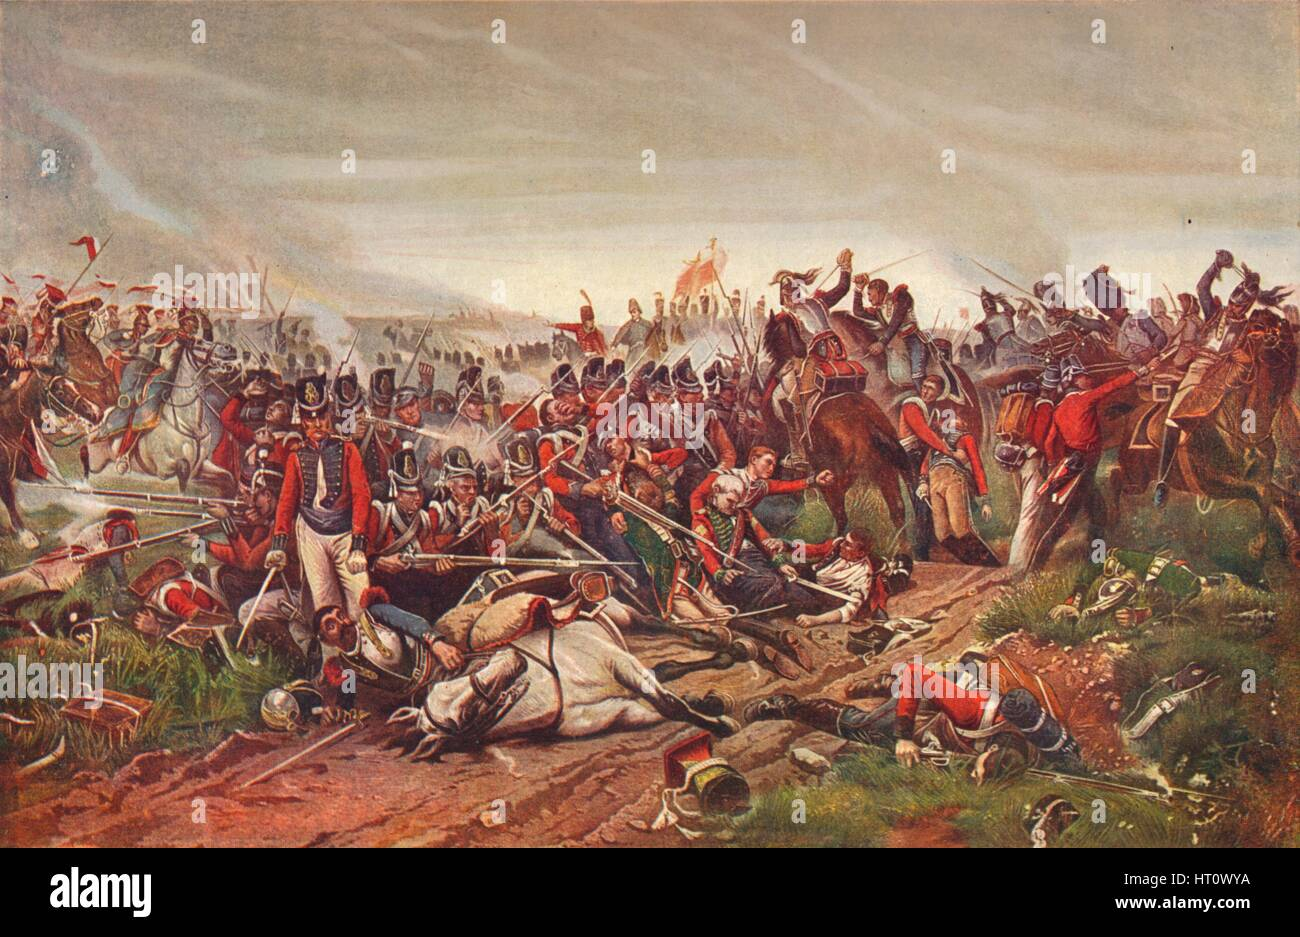 French cuirassiers charging a British infantry square at the Battle of Waterloo, 1815 (1906). Artist: P Jazet. - Stock Image